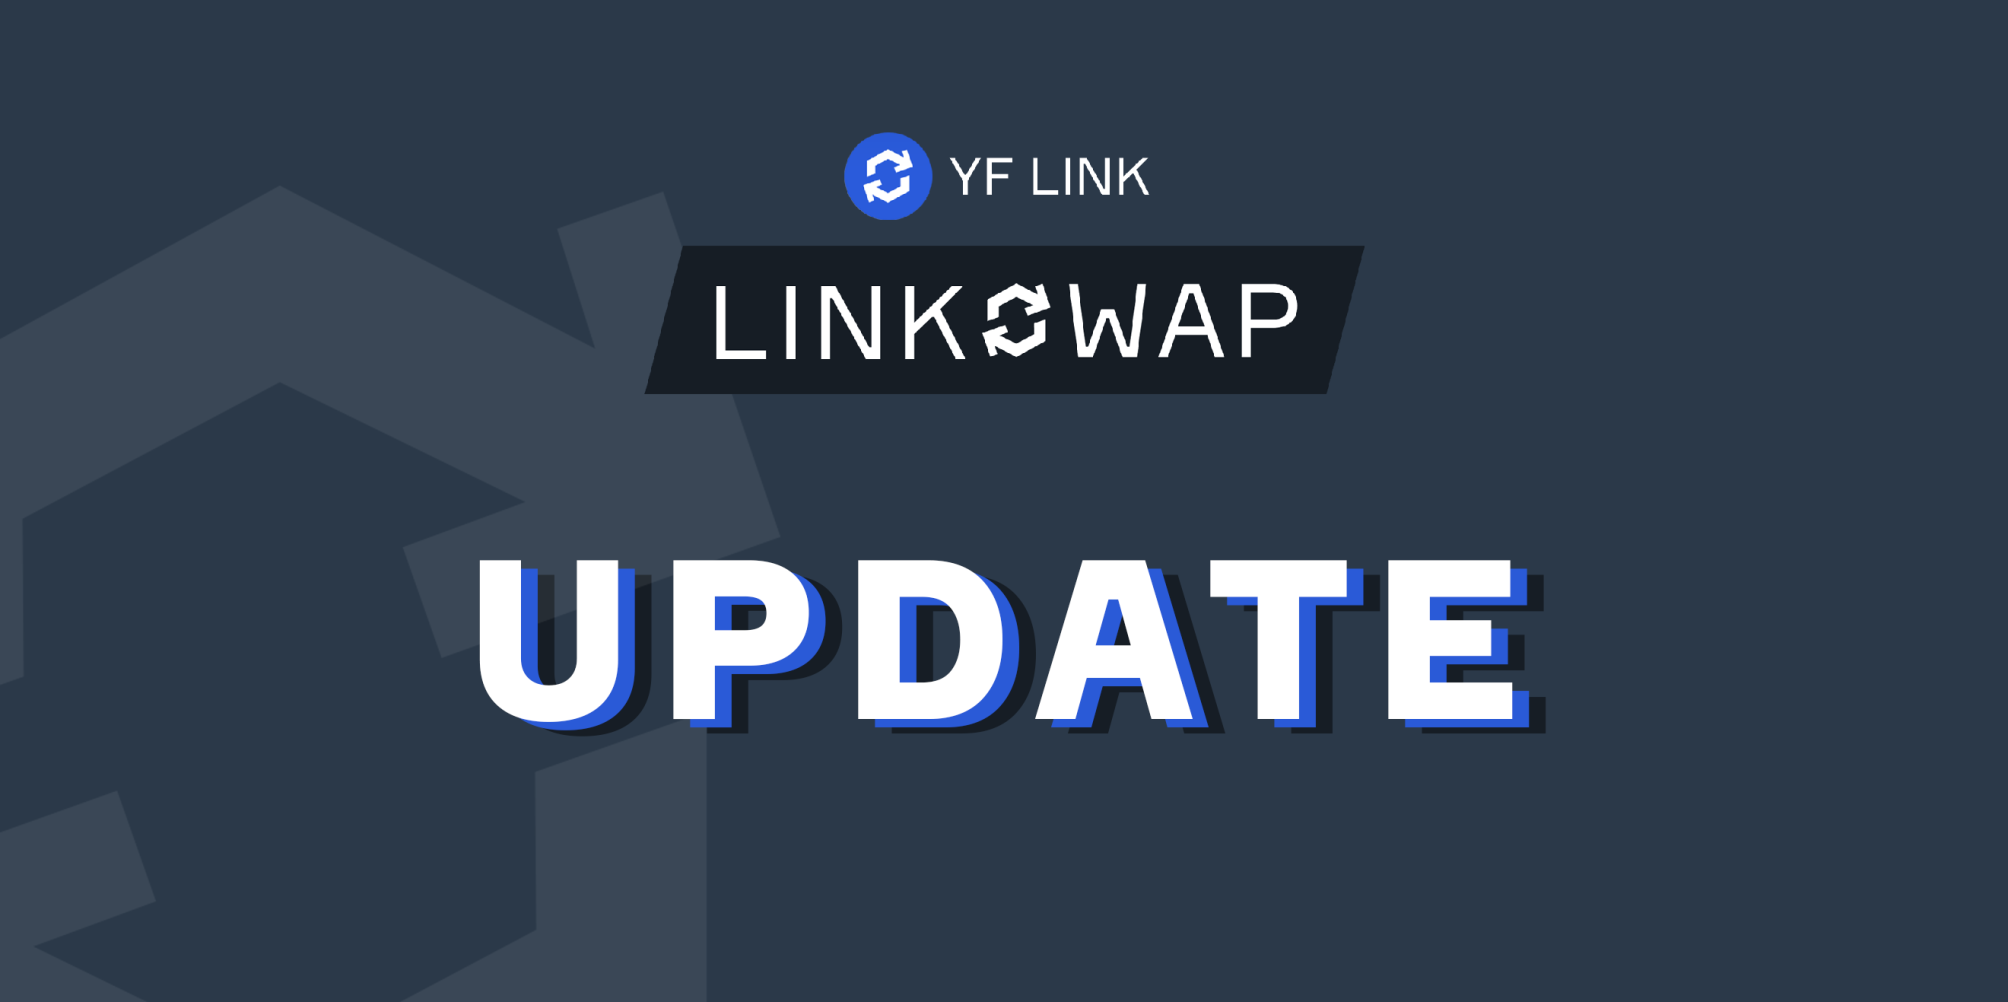 Linkswap update: Staking Rewards, Roadmap and New Core Team!